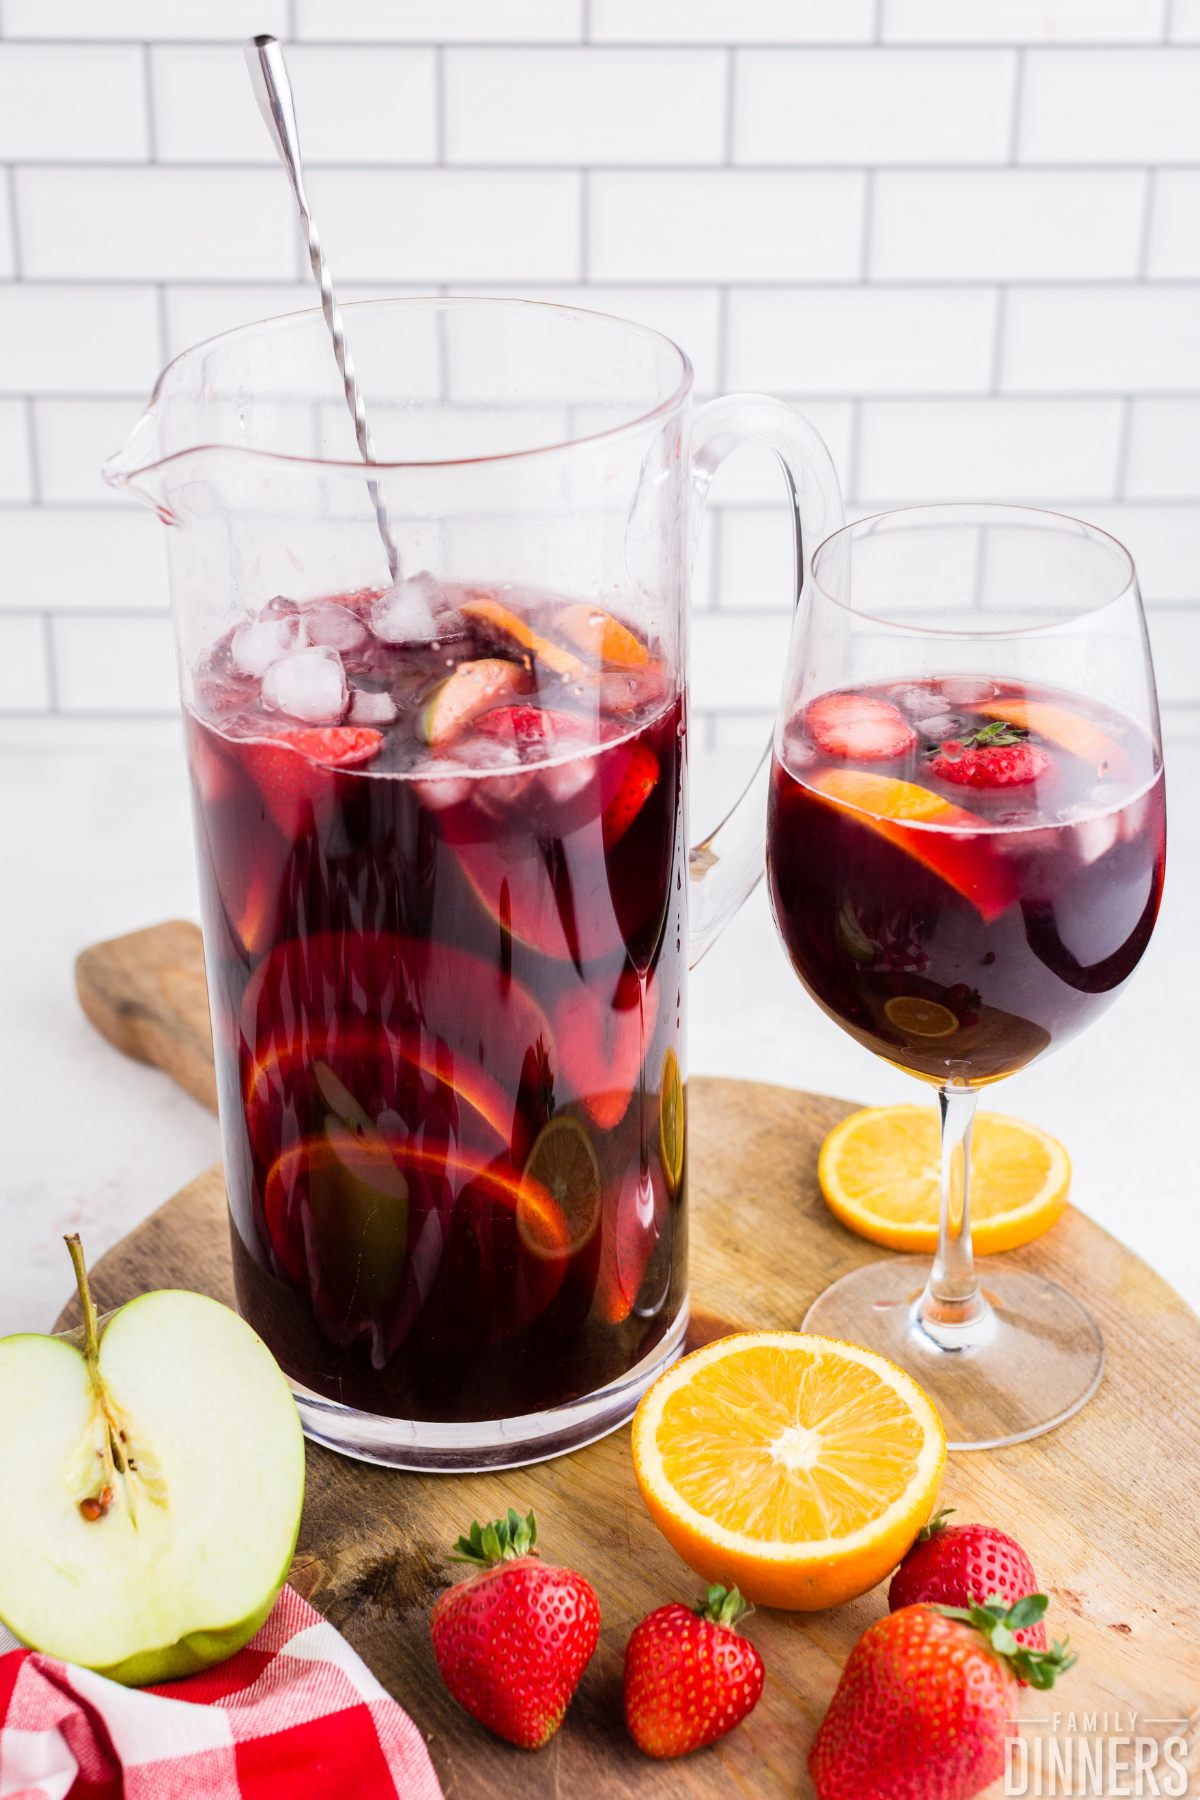 large glass pitcher with silver swizzle stick full of red wine sangria and chopped up fruit next to wine glass full of red wine sangria and fruit. Cut fruit on chopping board.